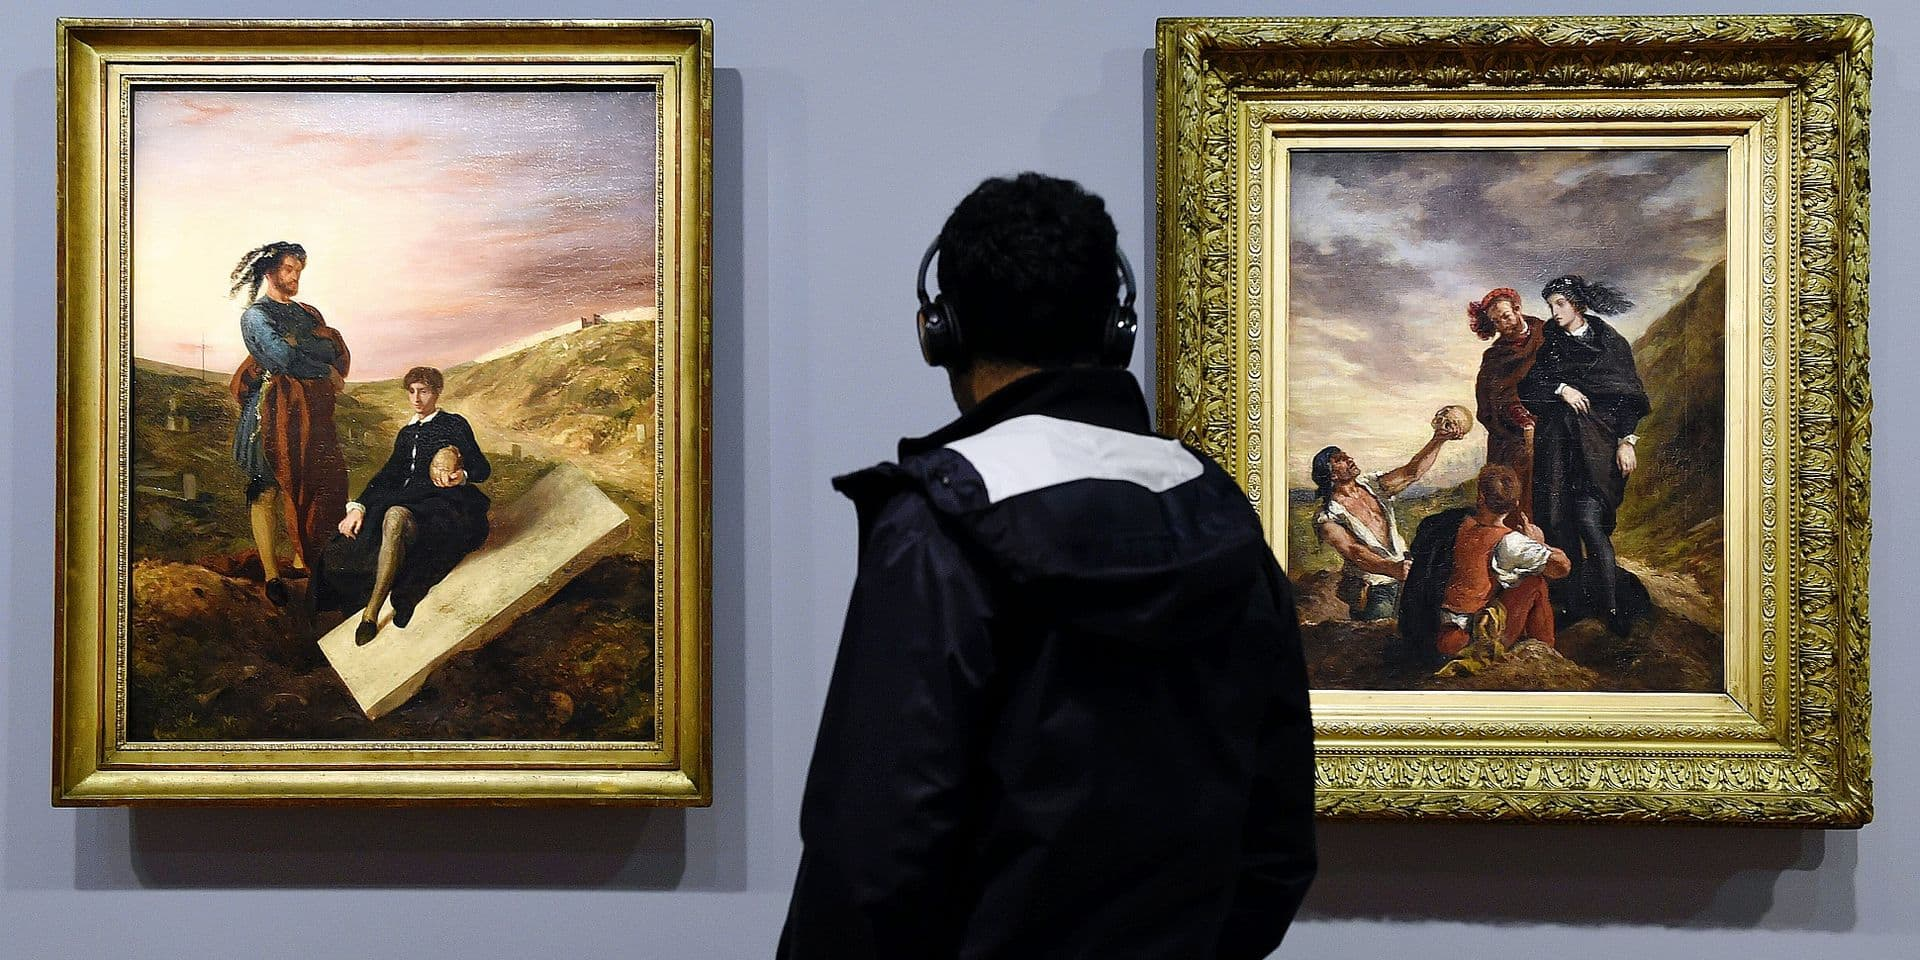 "©PHOTOPQR/L'EST REPUBLICAIN ; ART - CULTURE - PEINTURE FRANCAISE - EXPOSITION EUGENE DELACROIX - TABLEAU - TOILE - MUSEE DU LOUVRE. Paris 29 mars 2018. ""Hamlet et Horatio au cimetière"" (1835) et ""Hamlet et Horatio au cimetière"" (1839) dans l'exposition historique réunissant 180 oeuvres du peintre français Eugène DELACROIX (1798 - 1863) dans le hall Napoléon du musée du Louvre du 29 mars au 23 juillet 2018. PHOTO Alexandre MARCHI. - Paris, march 29th 2018. Louvre museum. Exhibition Eugene Delacroix (1798-1863) from March 29, 2018 to July 23, 2018 Eugène Delacroix was one of the giants of French painting, but his last full retrospective exhibition in Paris dates back to 1963, the centenary year of his death. In collaboration with the Metropolitan Museum of Art in New York, the Louvre is holding a historic exhibition featuring some 180 works-mostly paintings-as a tribute to his entire career."